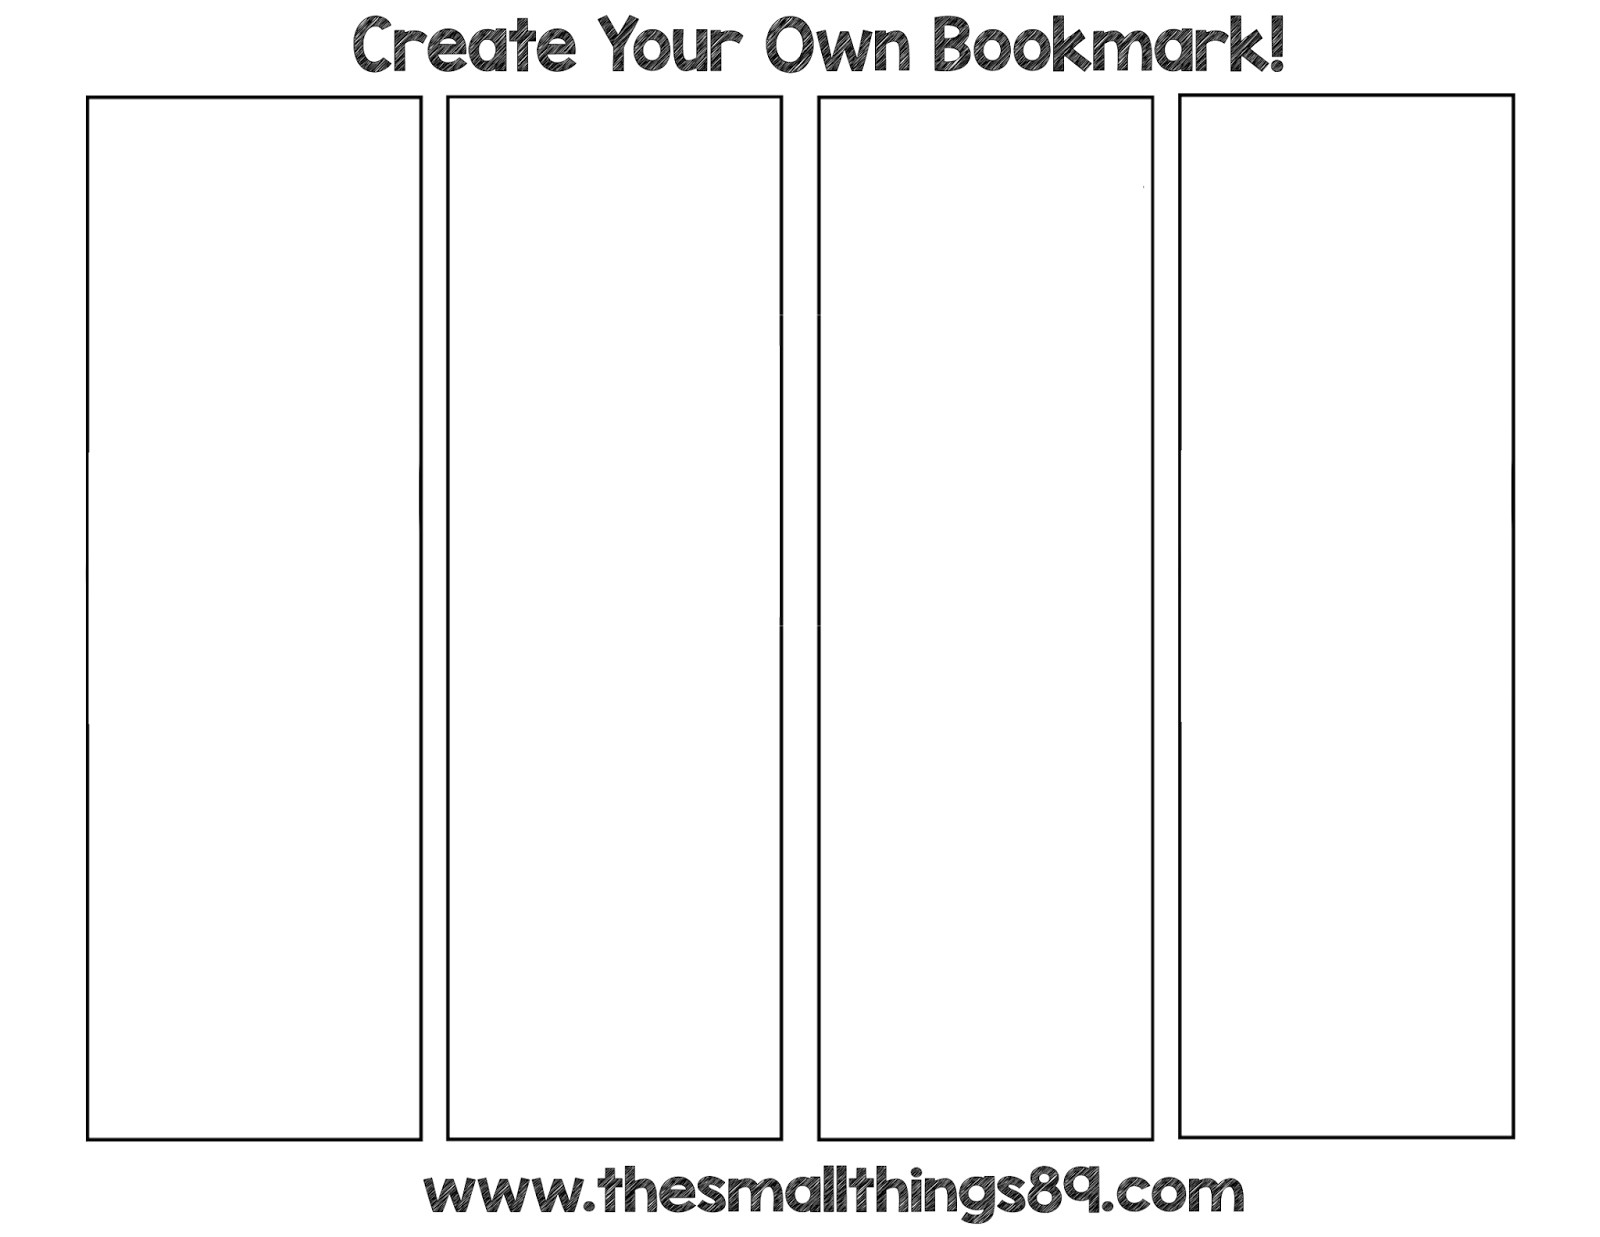 Bookmark Template Avery Template Avery